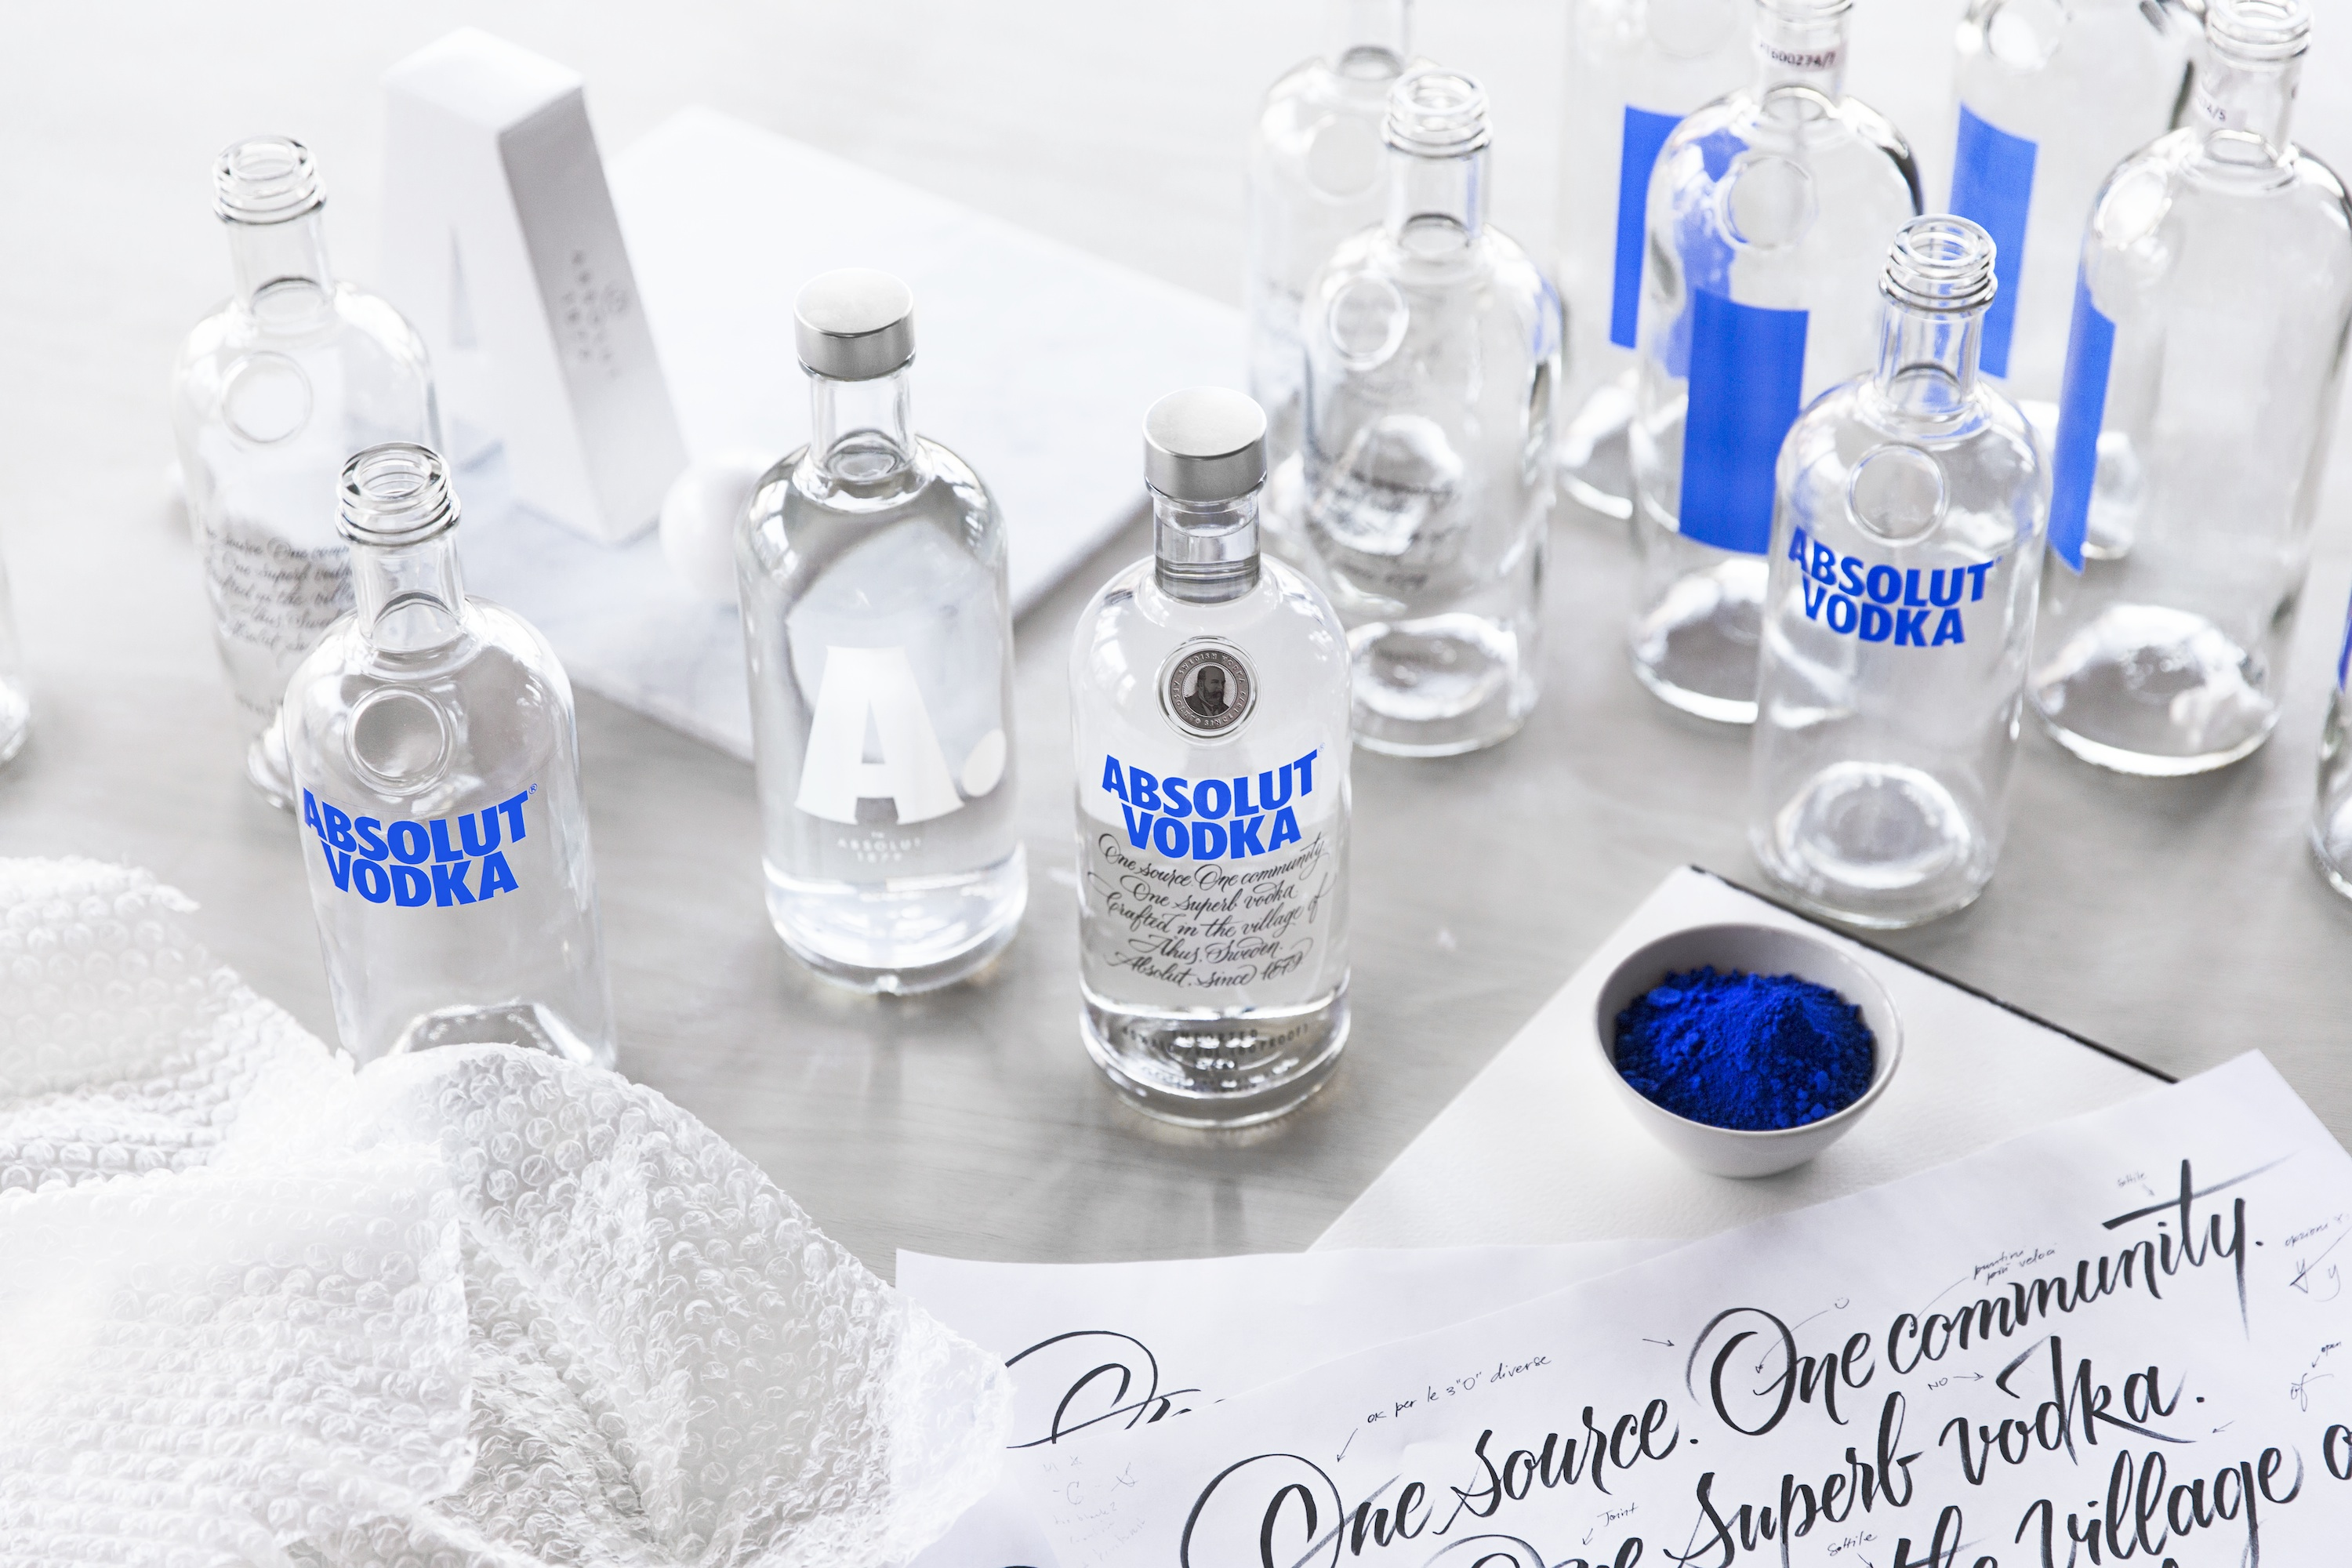 ABSOLUT-PROCESS